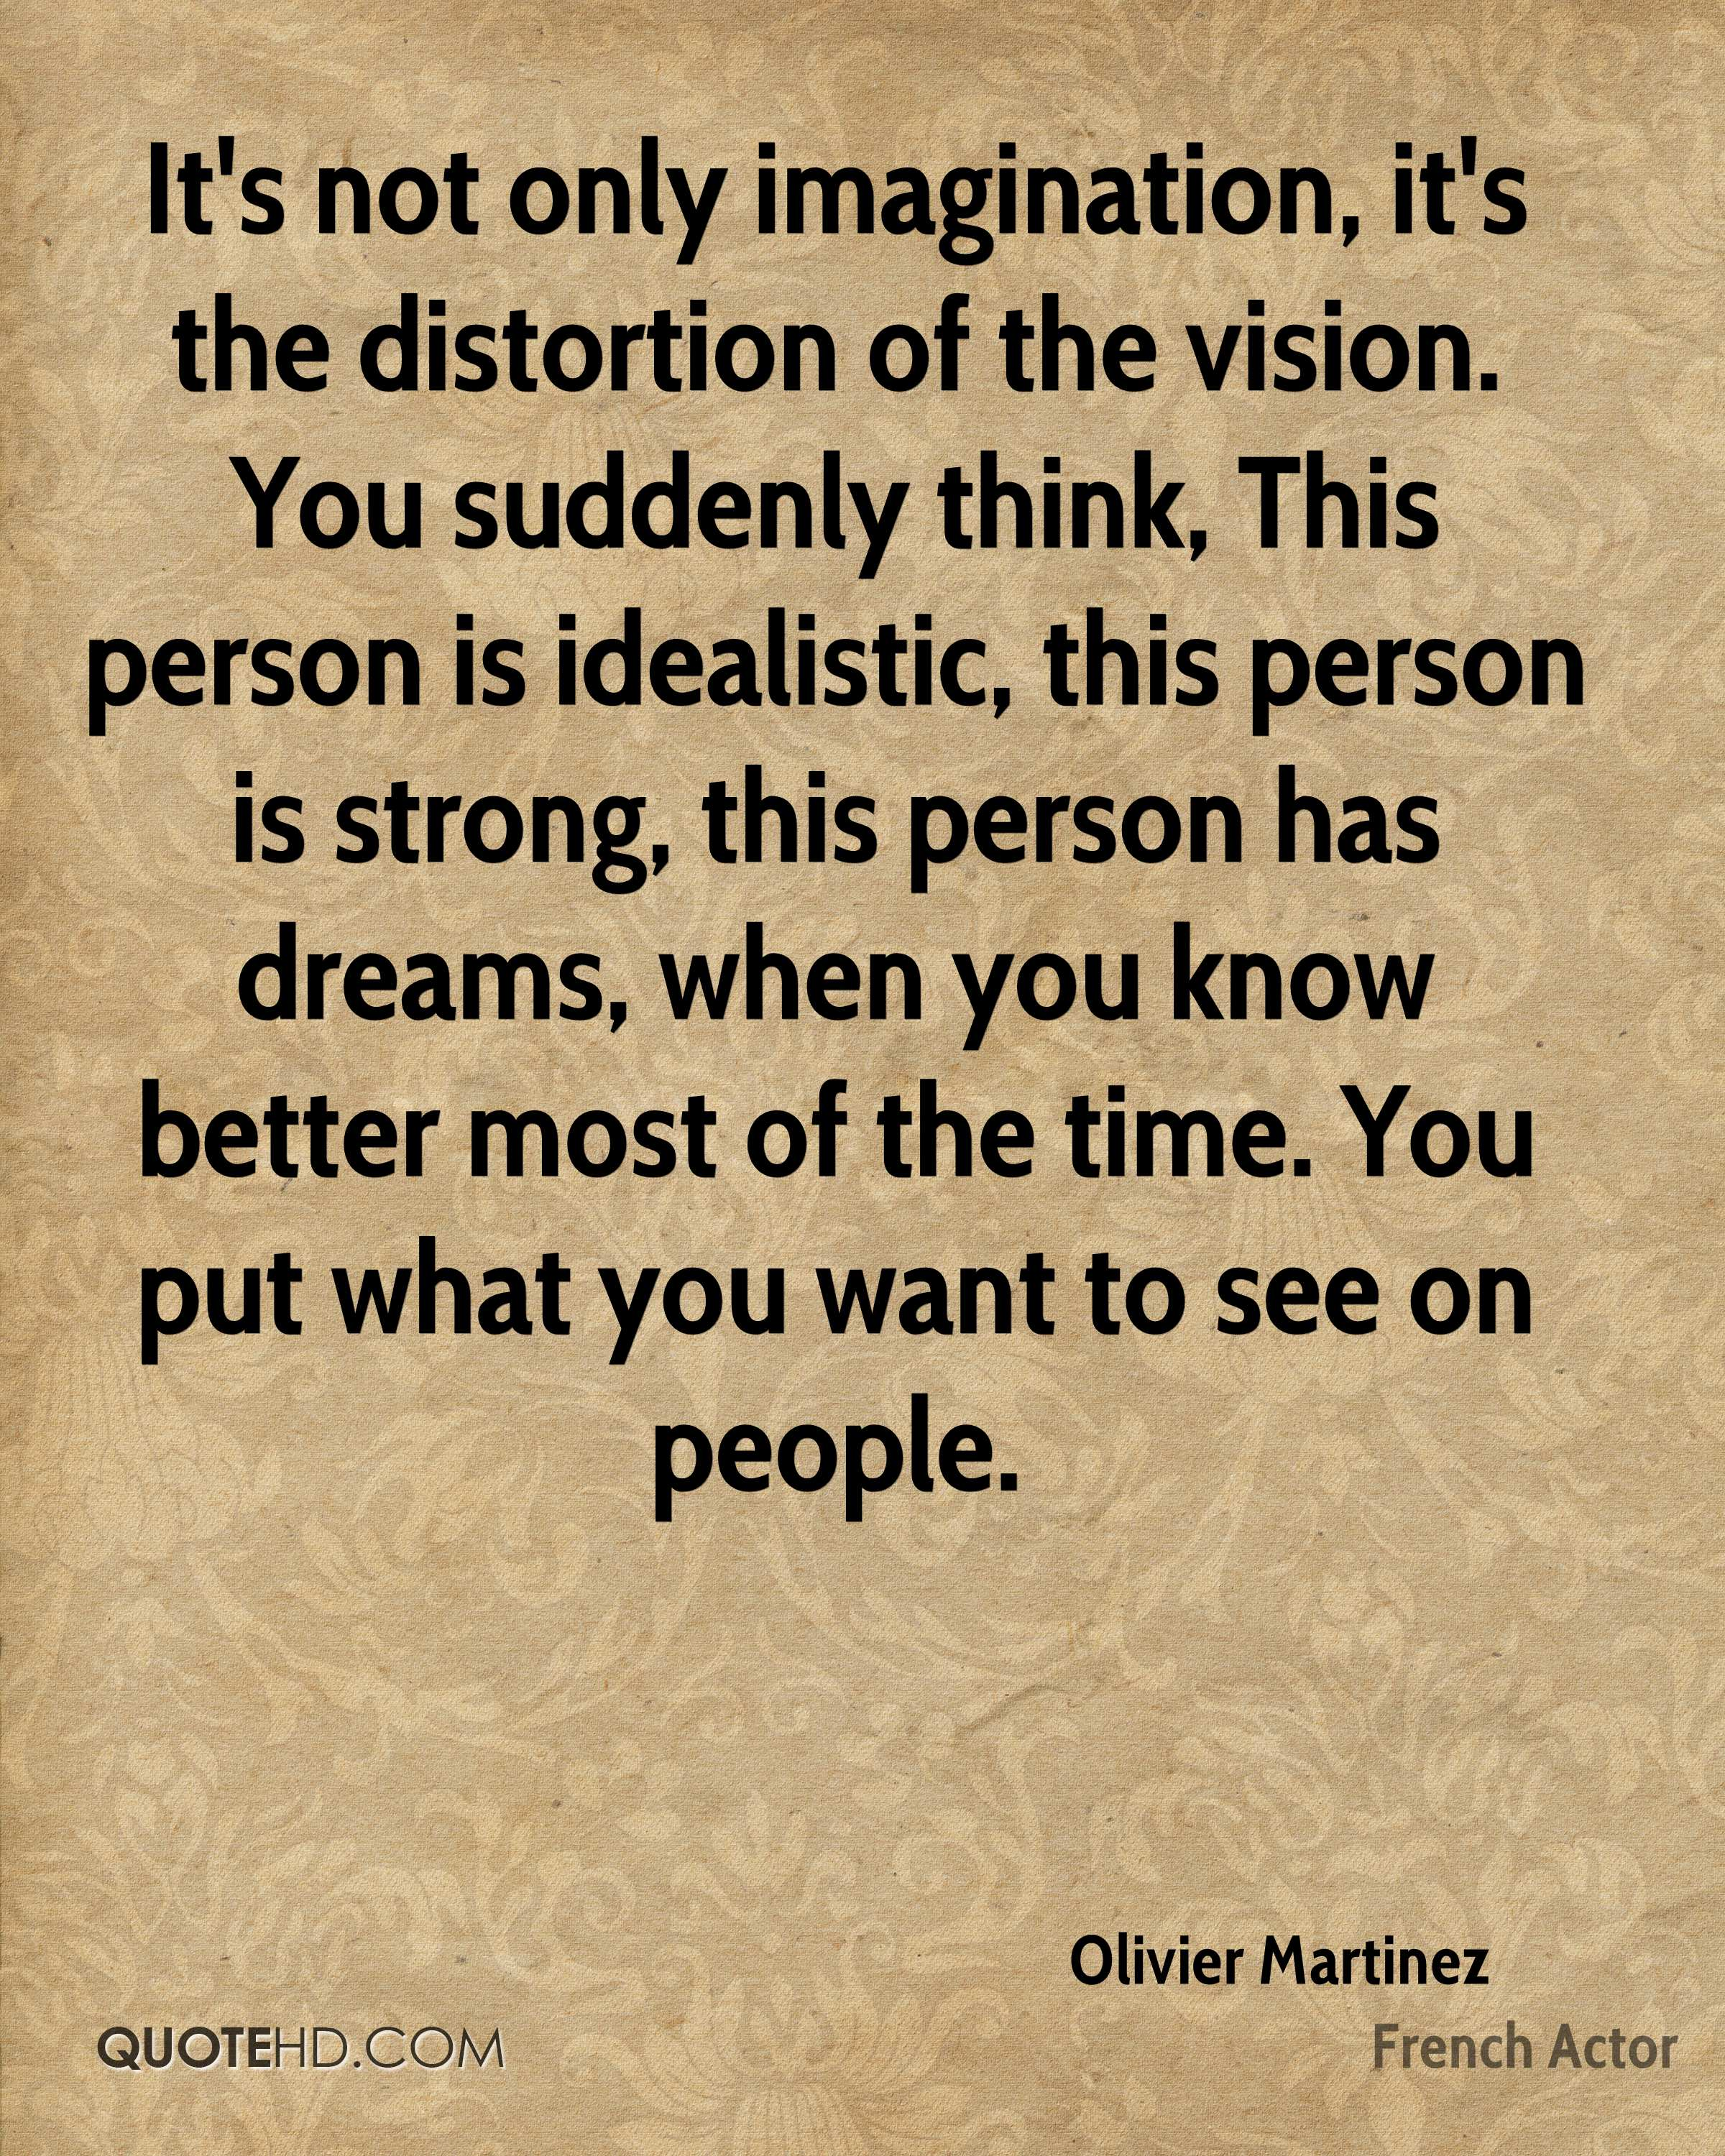 It's not only imagination, it's the distortion of the vision. You suddenly think, This person is idealistic, this person is strong, this person has dreams, when you know better most of the time. You put what you want to see on people.